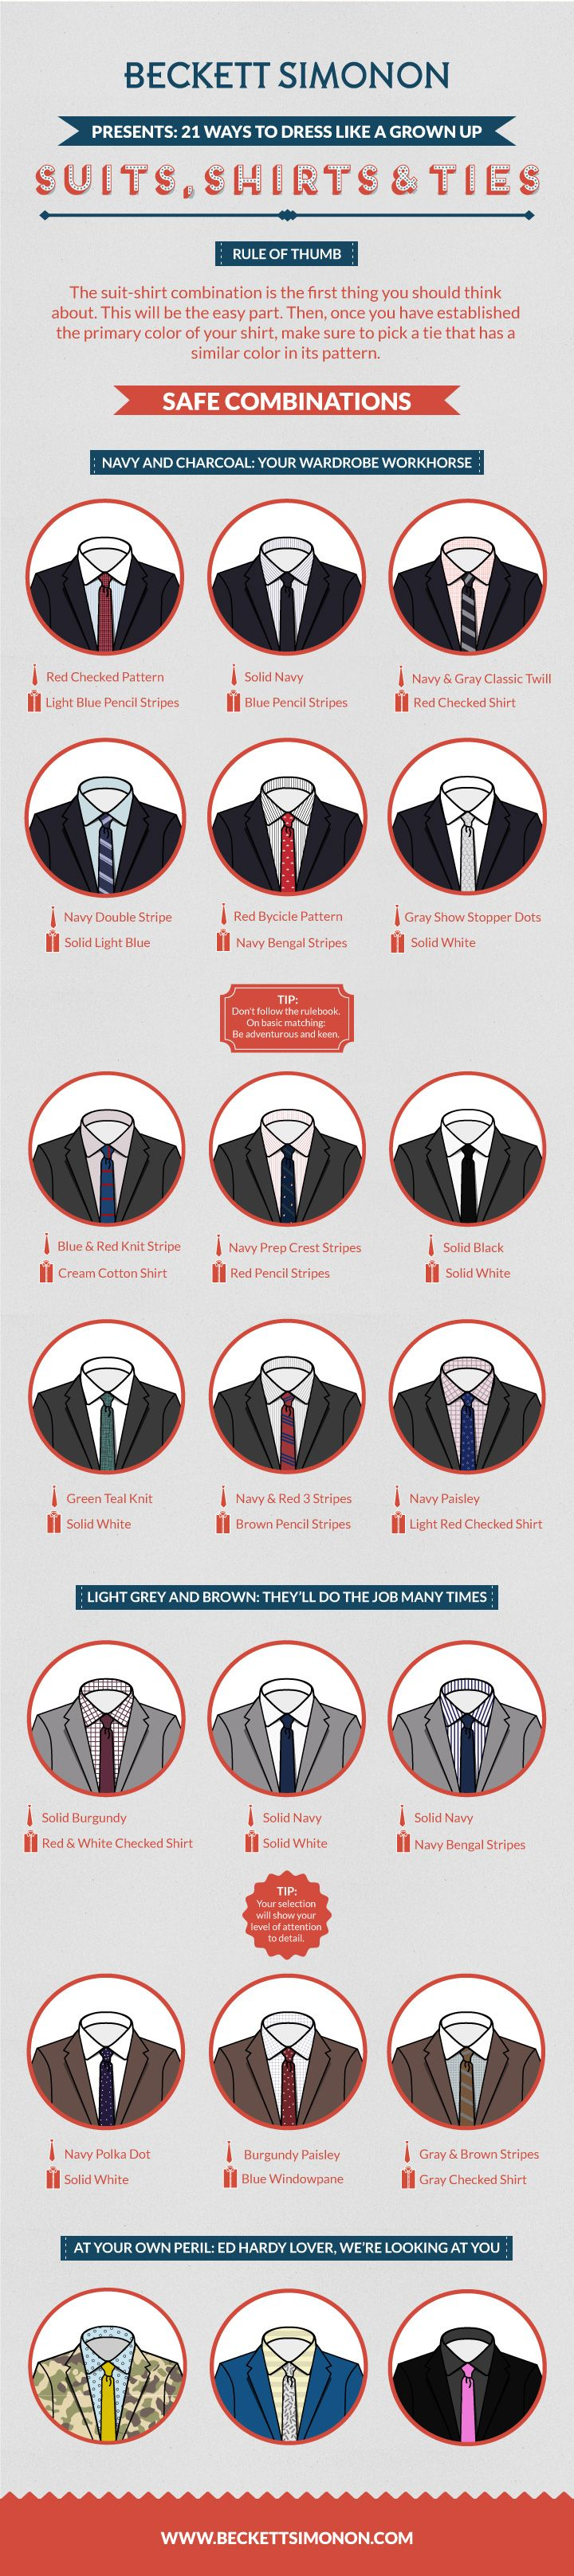 Safe/Basic combinations #tipographic #menstyle #menswear #RMRS #infographic